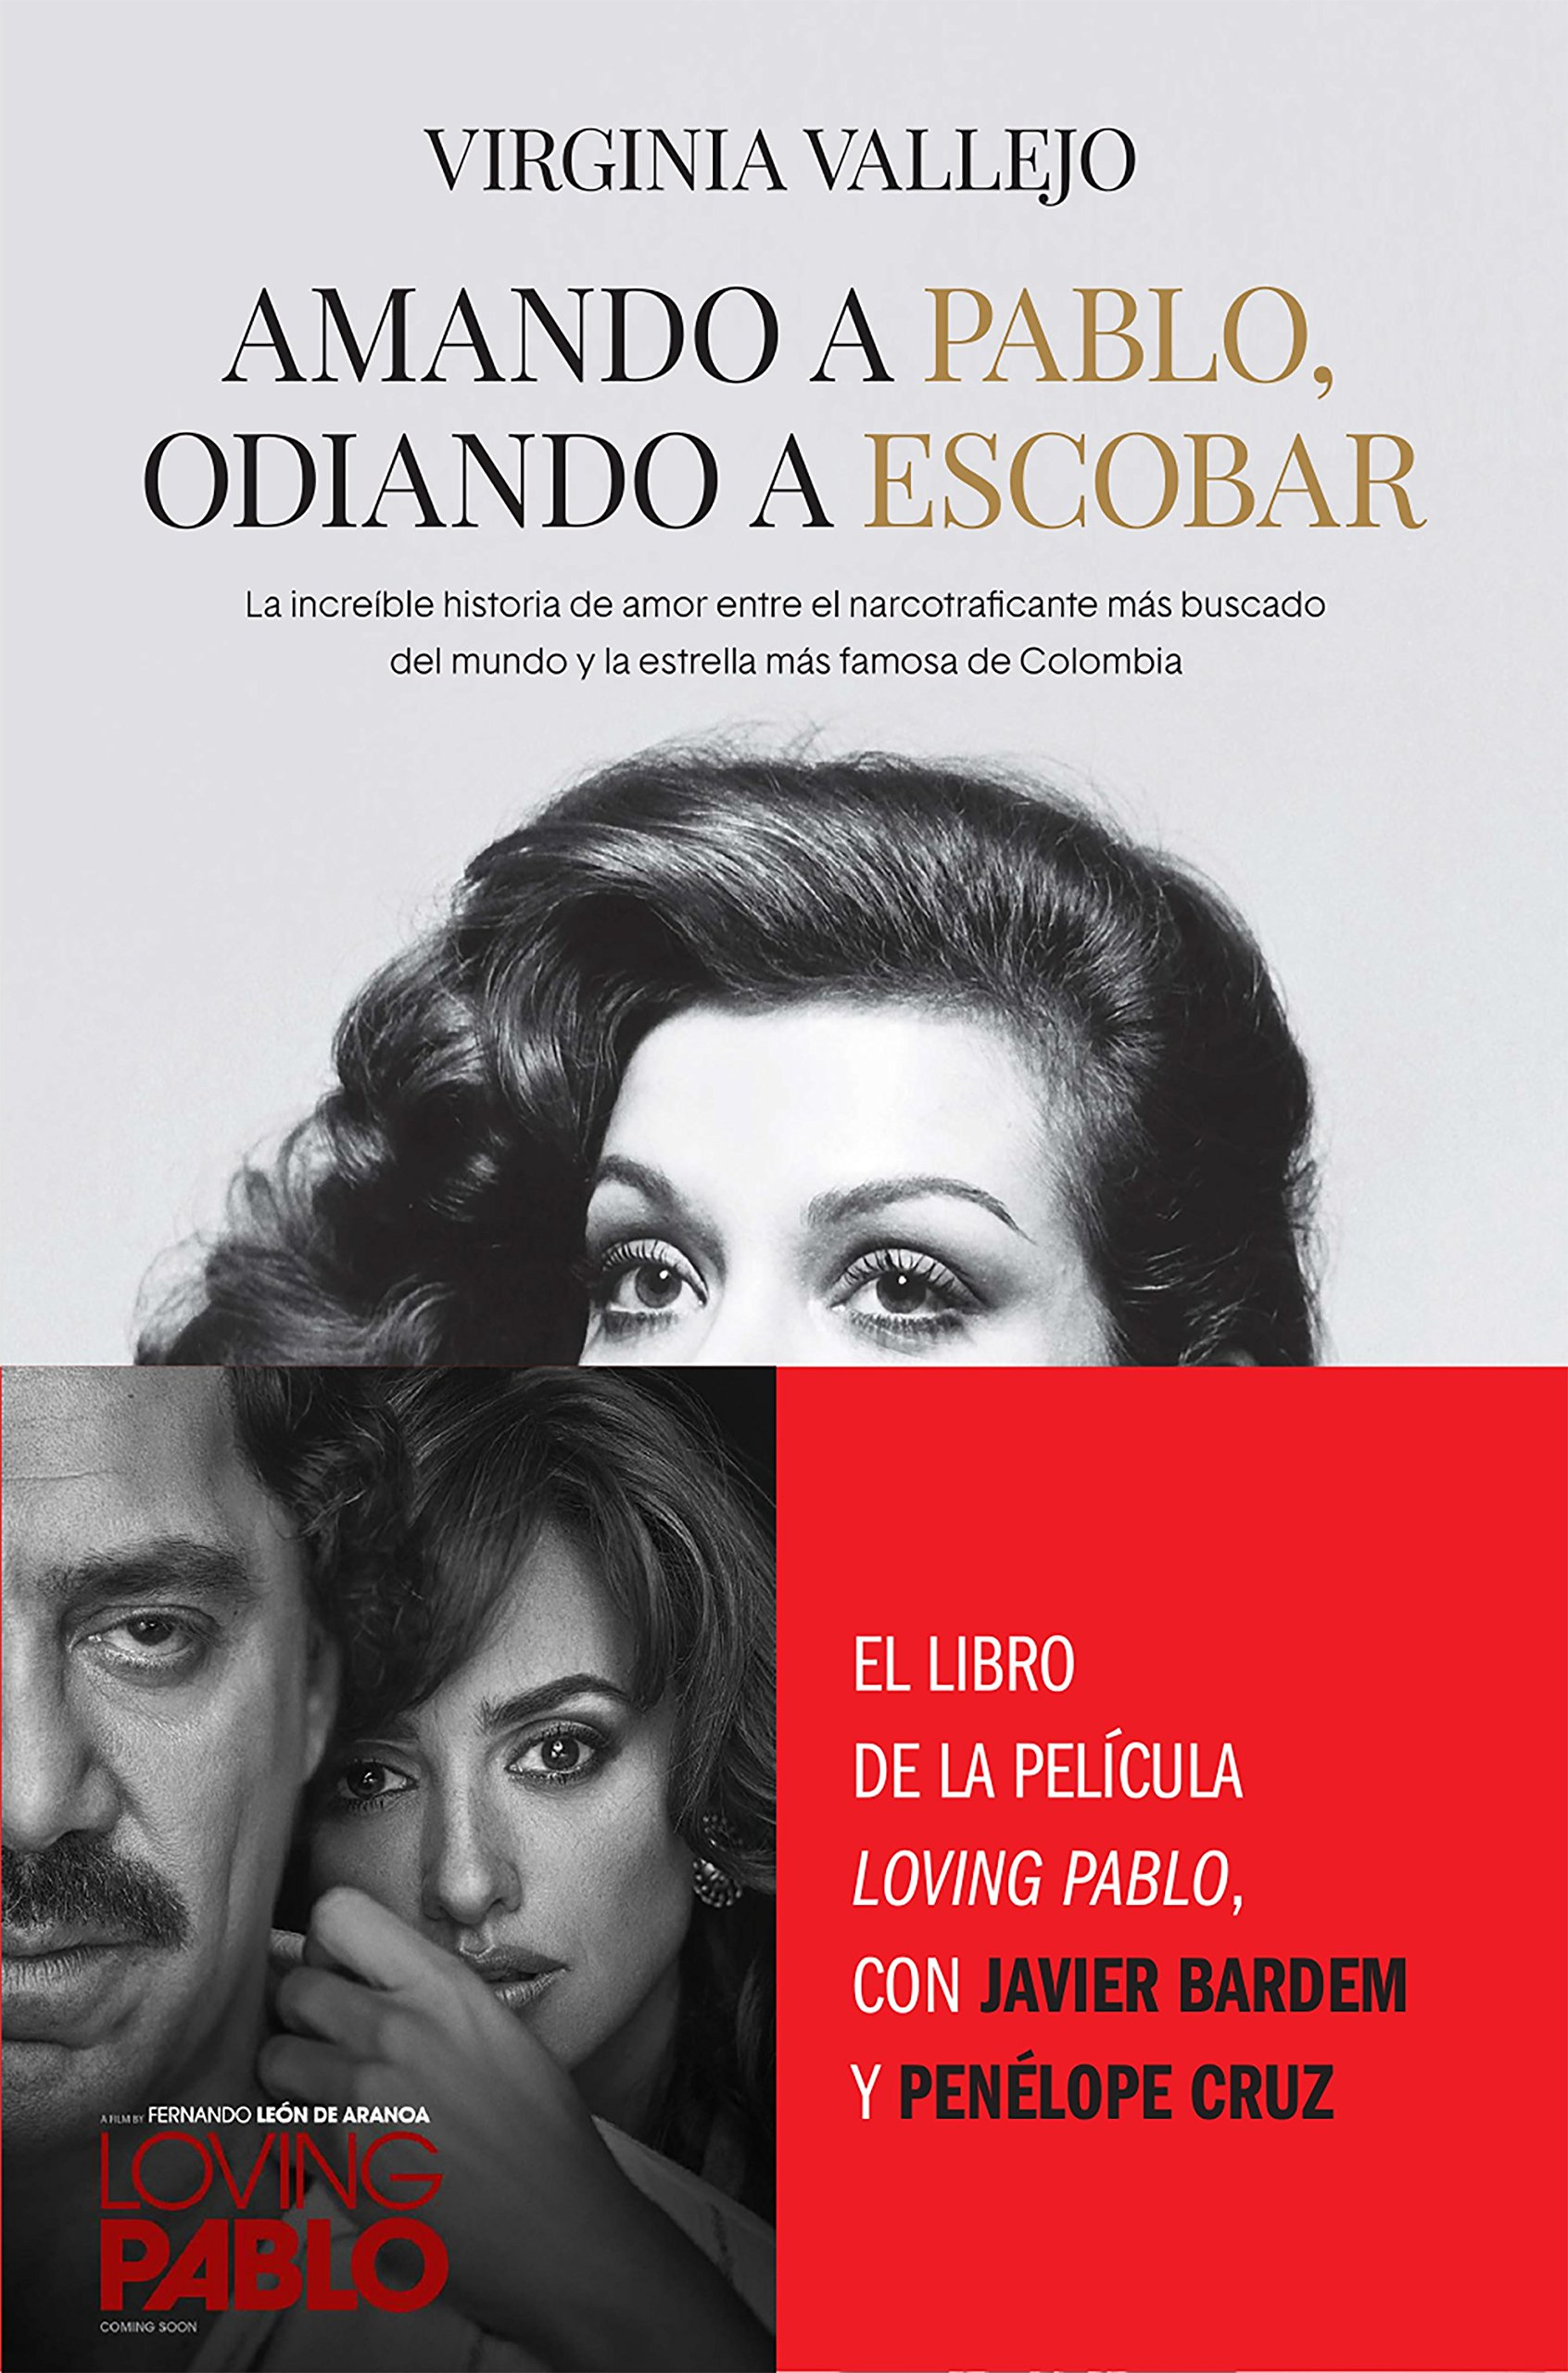 Amando a Pablo, odiando a Escobar: Virginia Vallejo: 9788499426402: Amazon.com: Books